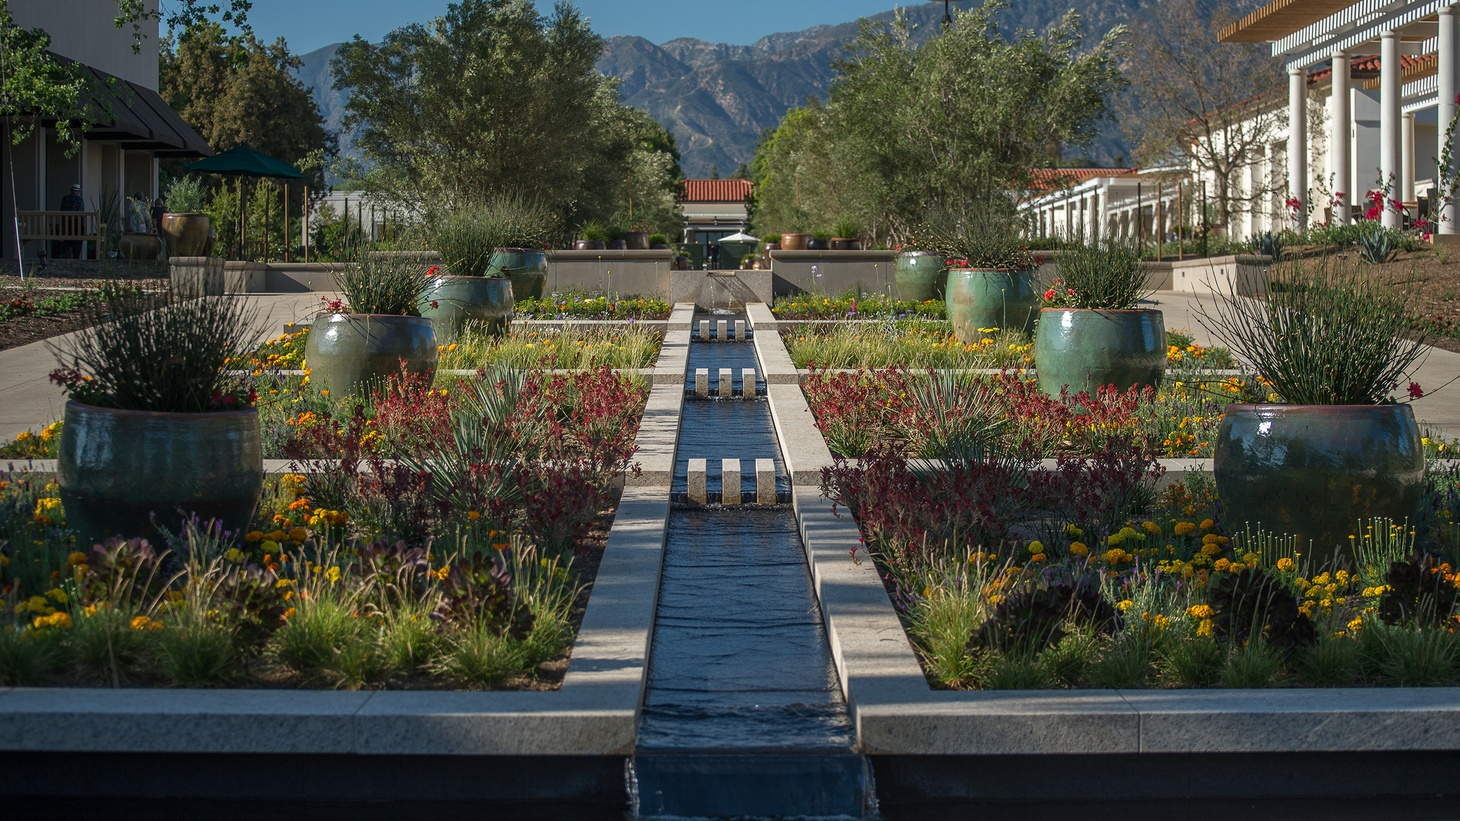 Entry garden at the Huntington Library, Art Museum, and Botanical Gardens in San Marino, founded 1919.